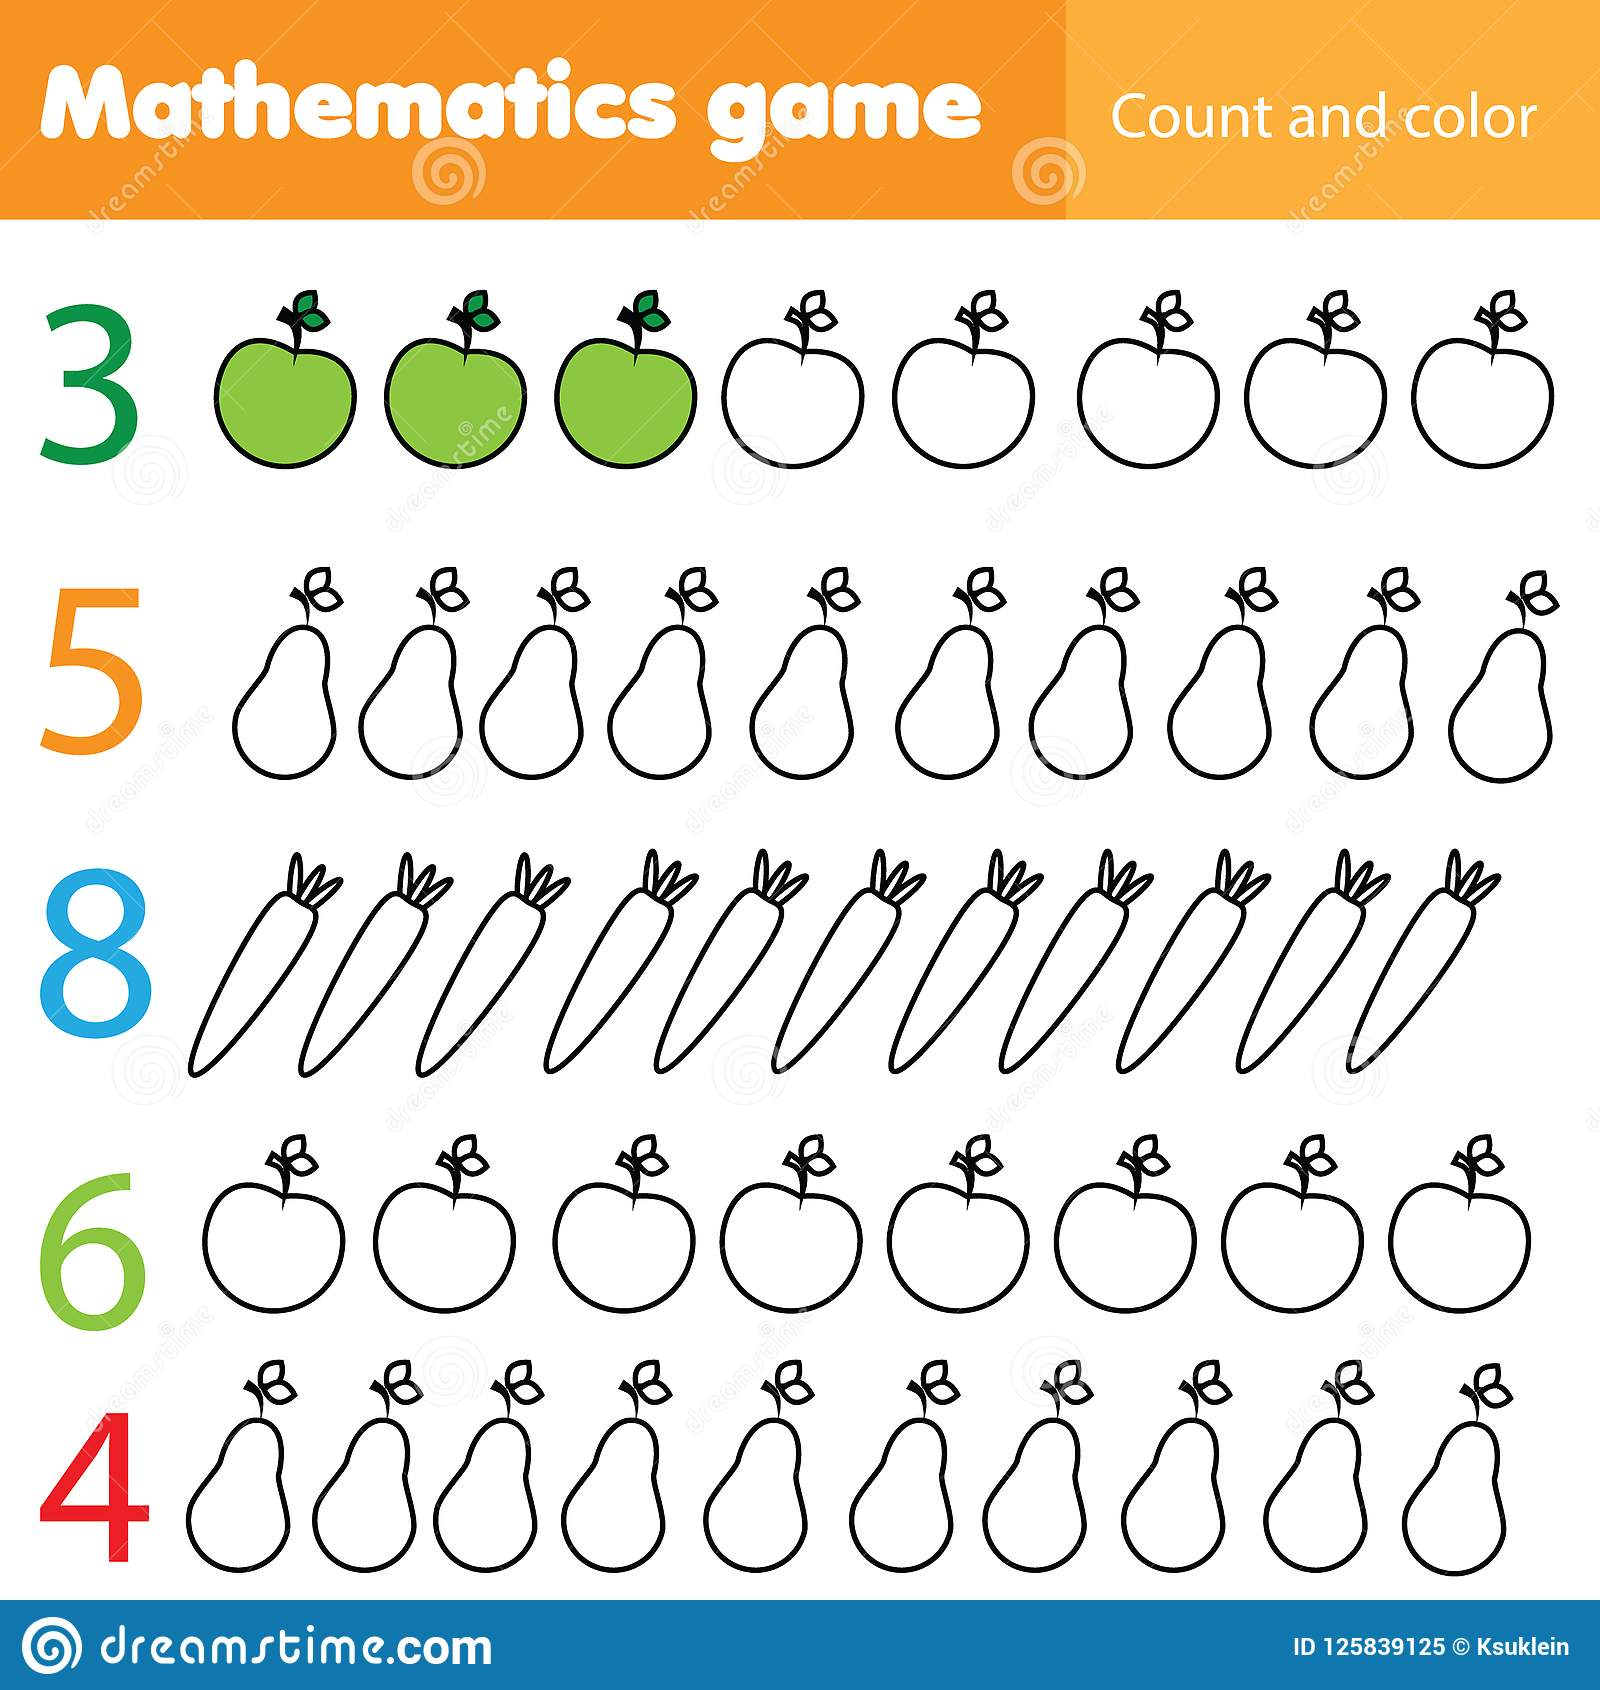 Mathematics Worksheet For Kids Count And Color Educational Children Activity With Fruits And